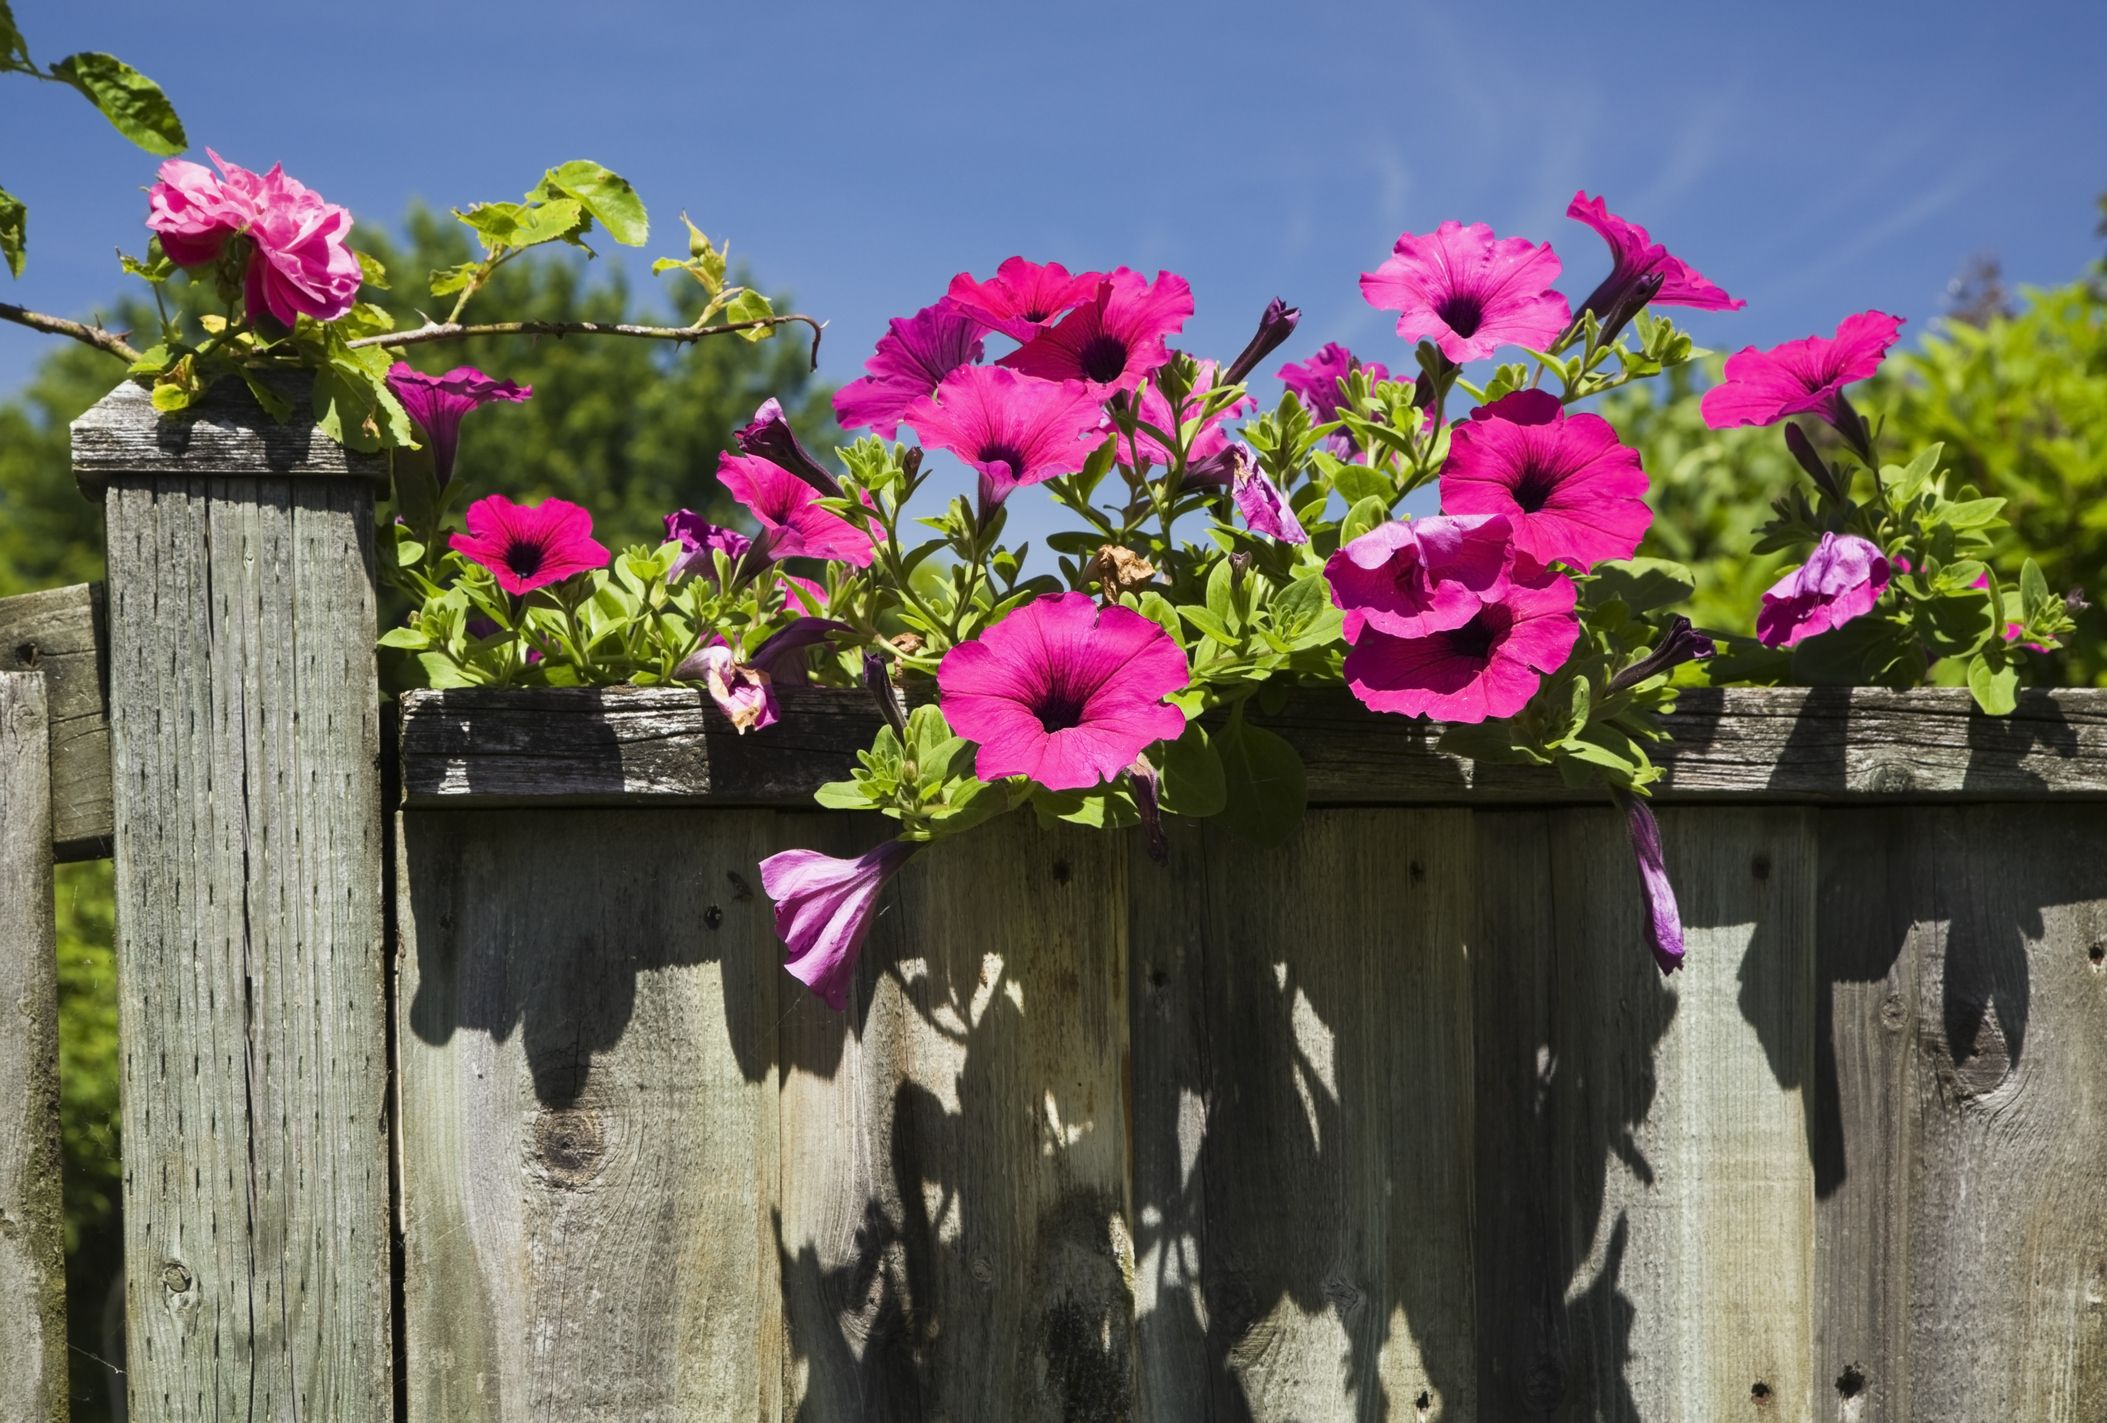 Top tips for adding colour to your garden